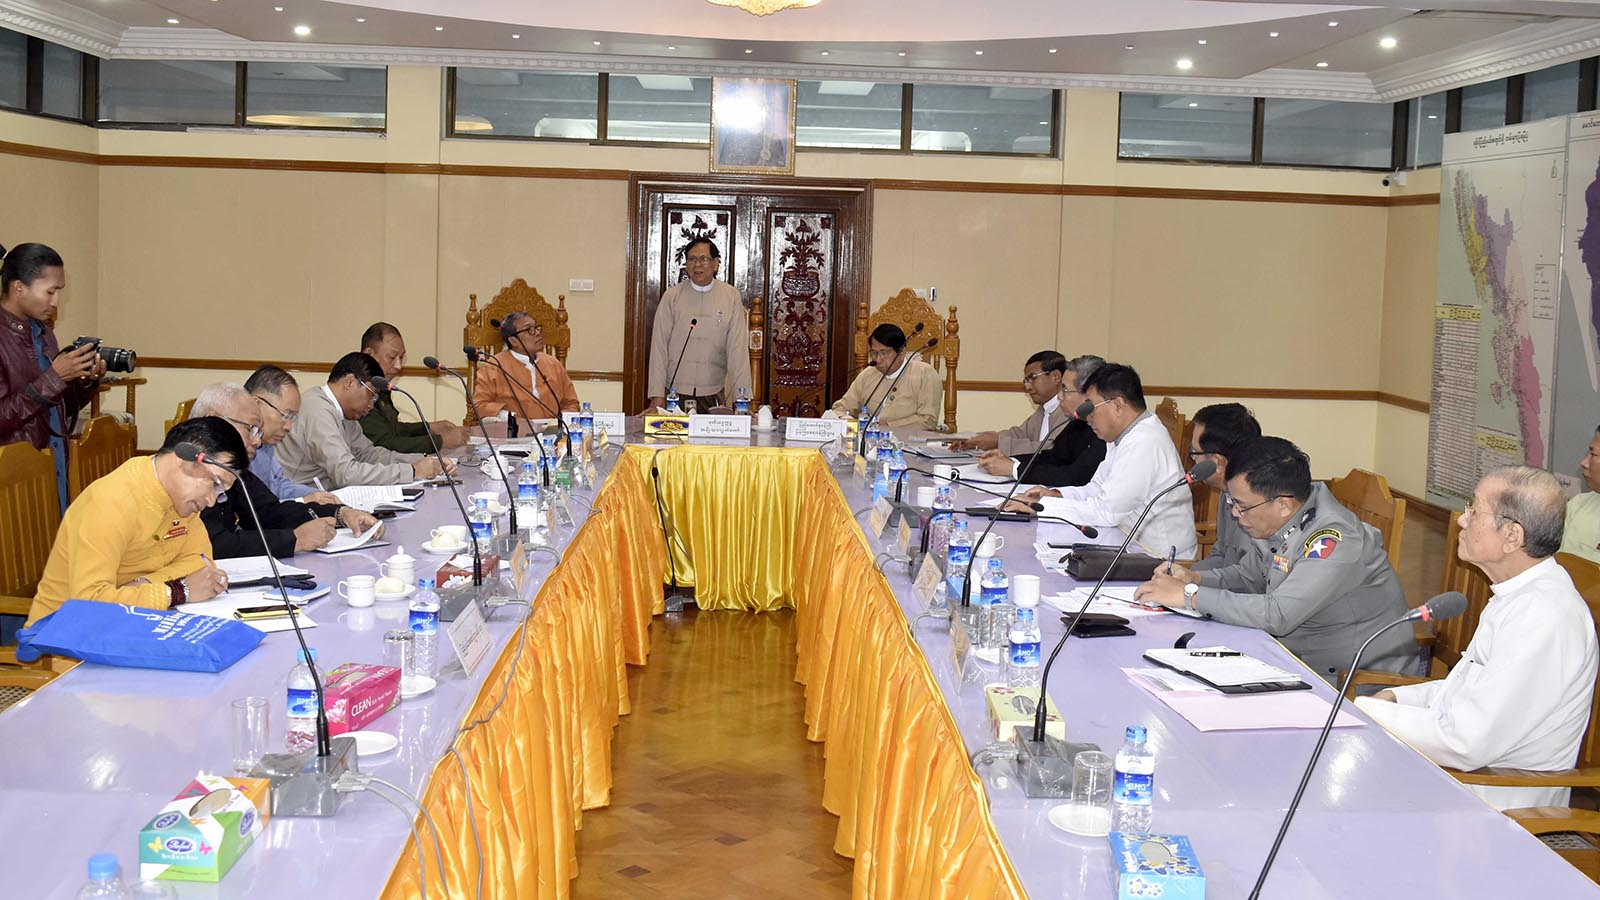 Amyotha Hluttaw Deputy Speaker U Aye Tha Aung delivers the speech during the meeting with officials from Rakhine State government.Photo: MNA